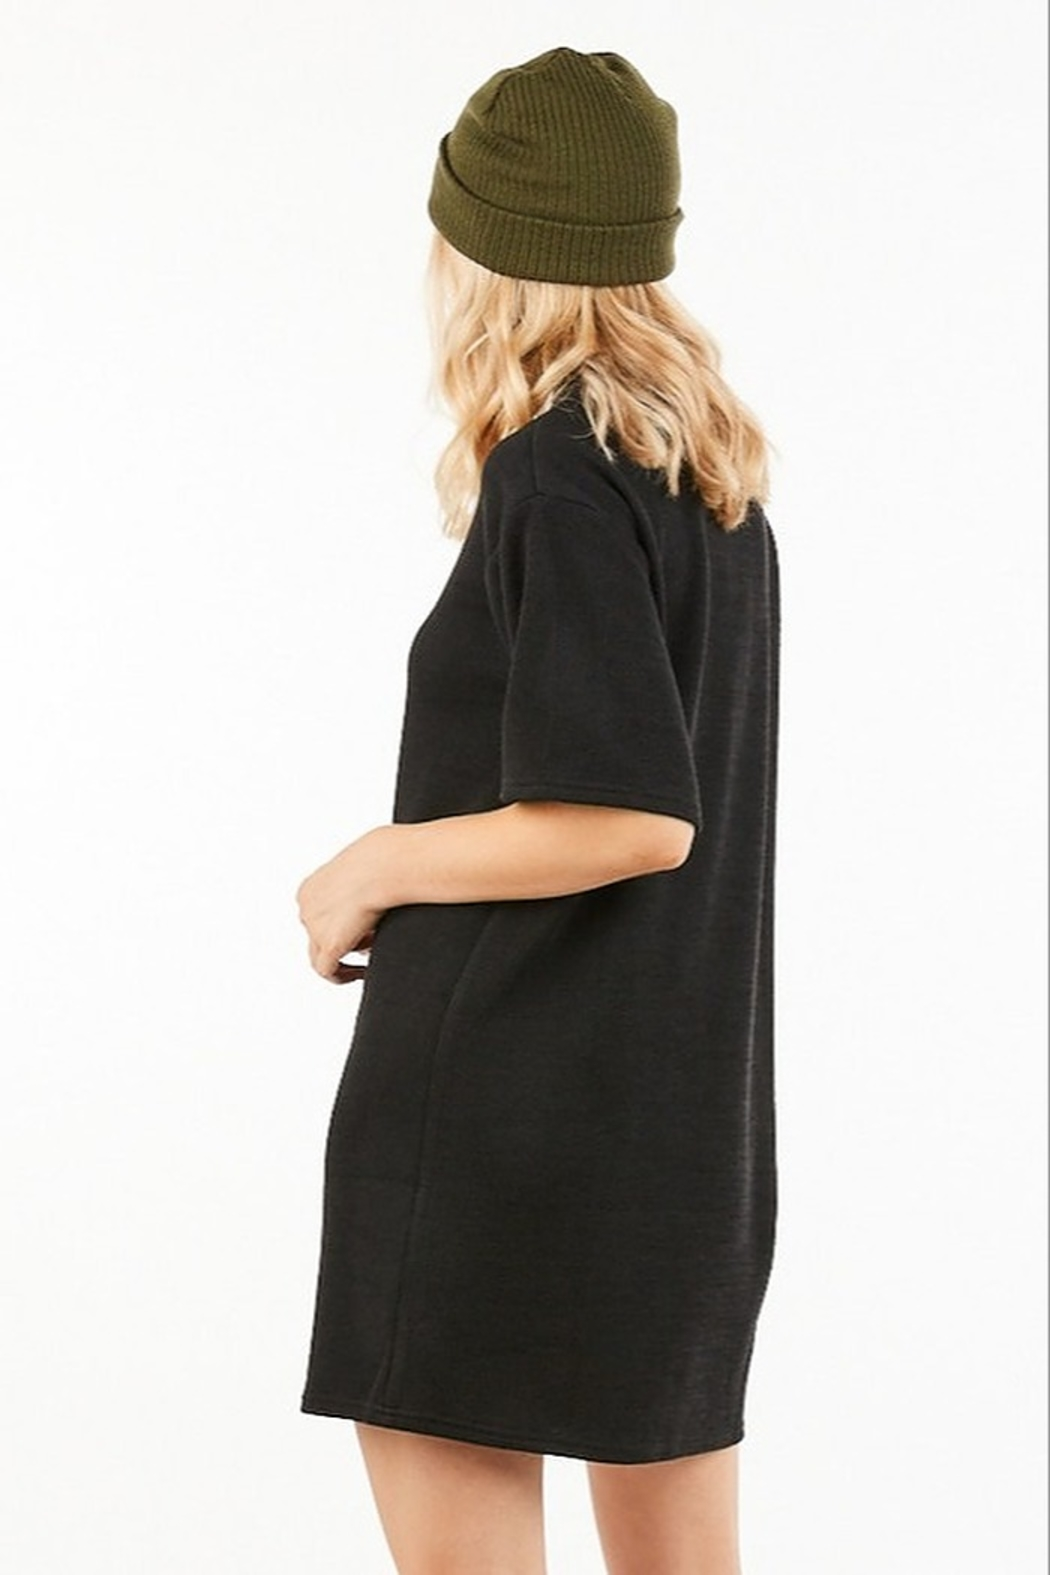 Very J Turtleneck Sweater Dress - Side Cropped Image